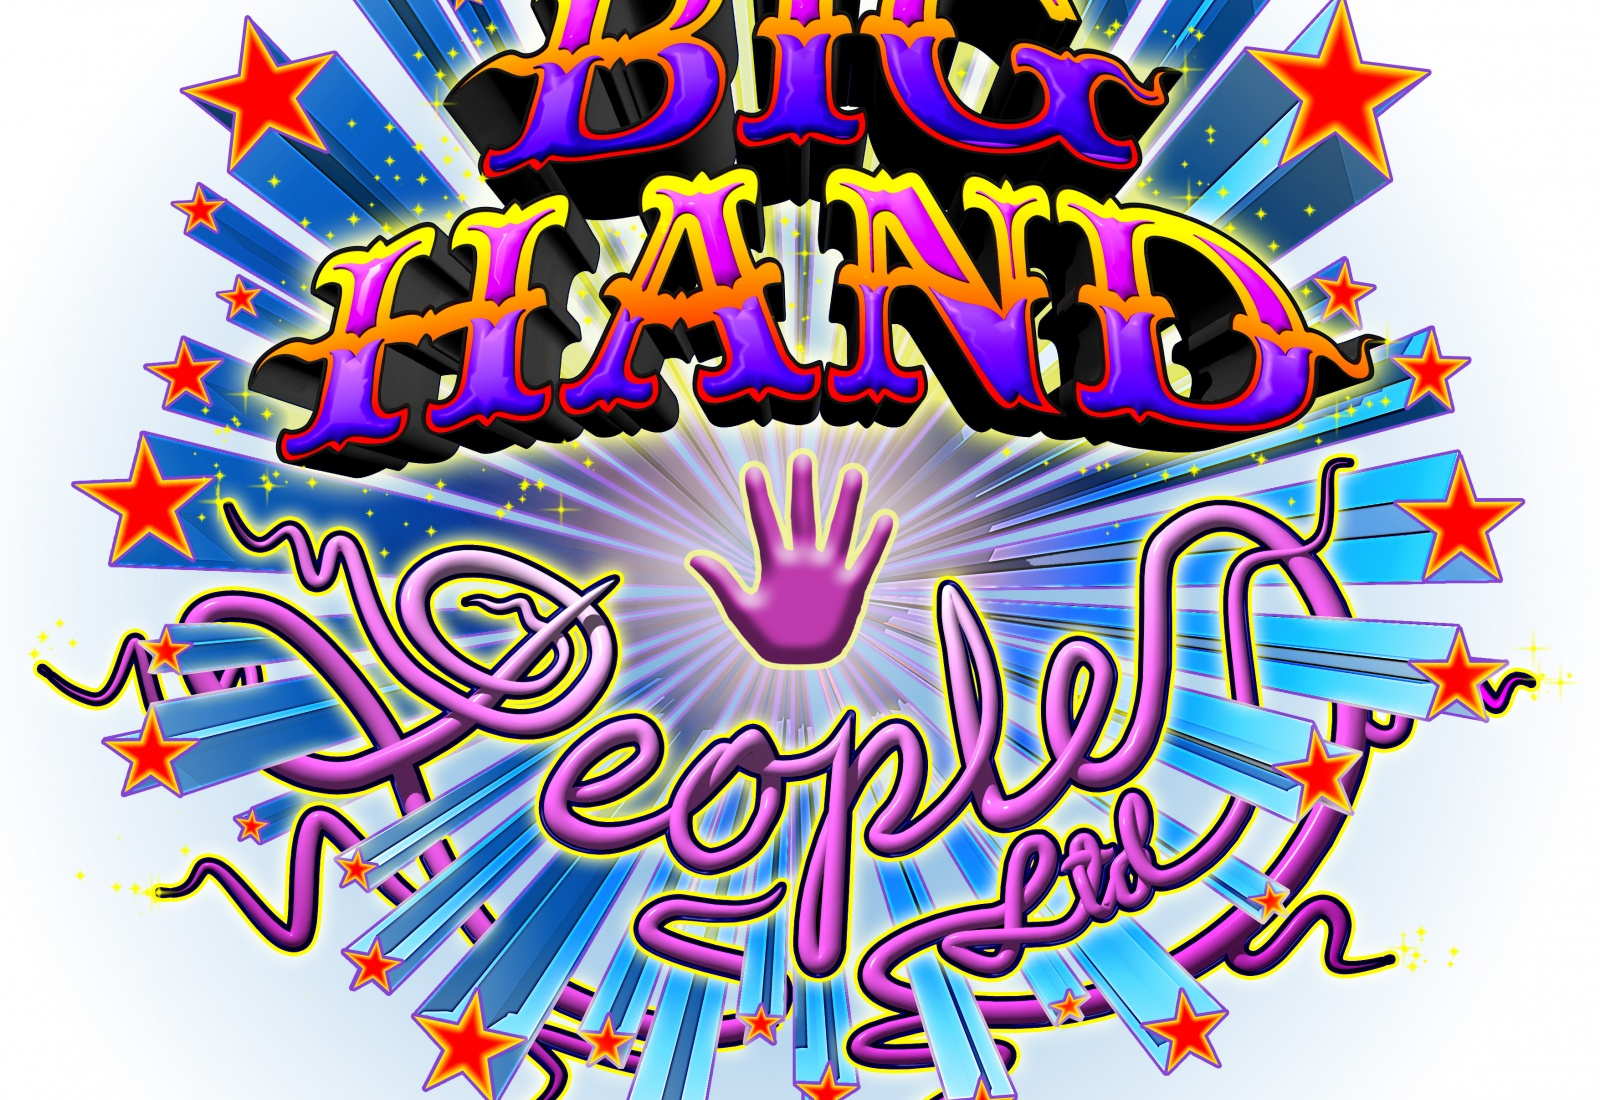 Big Hand People Ltd